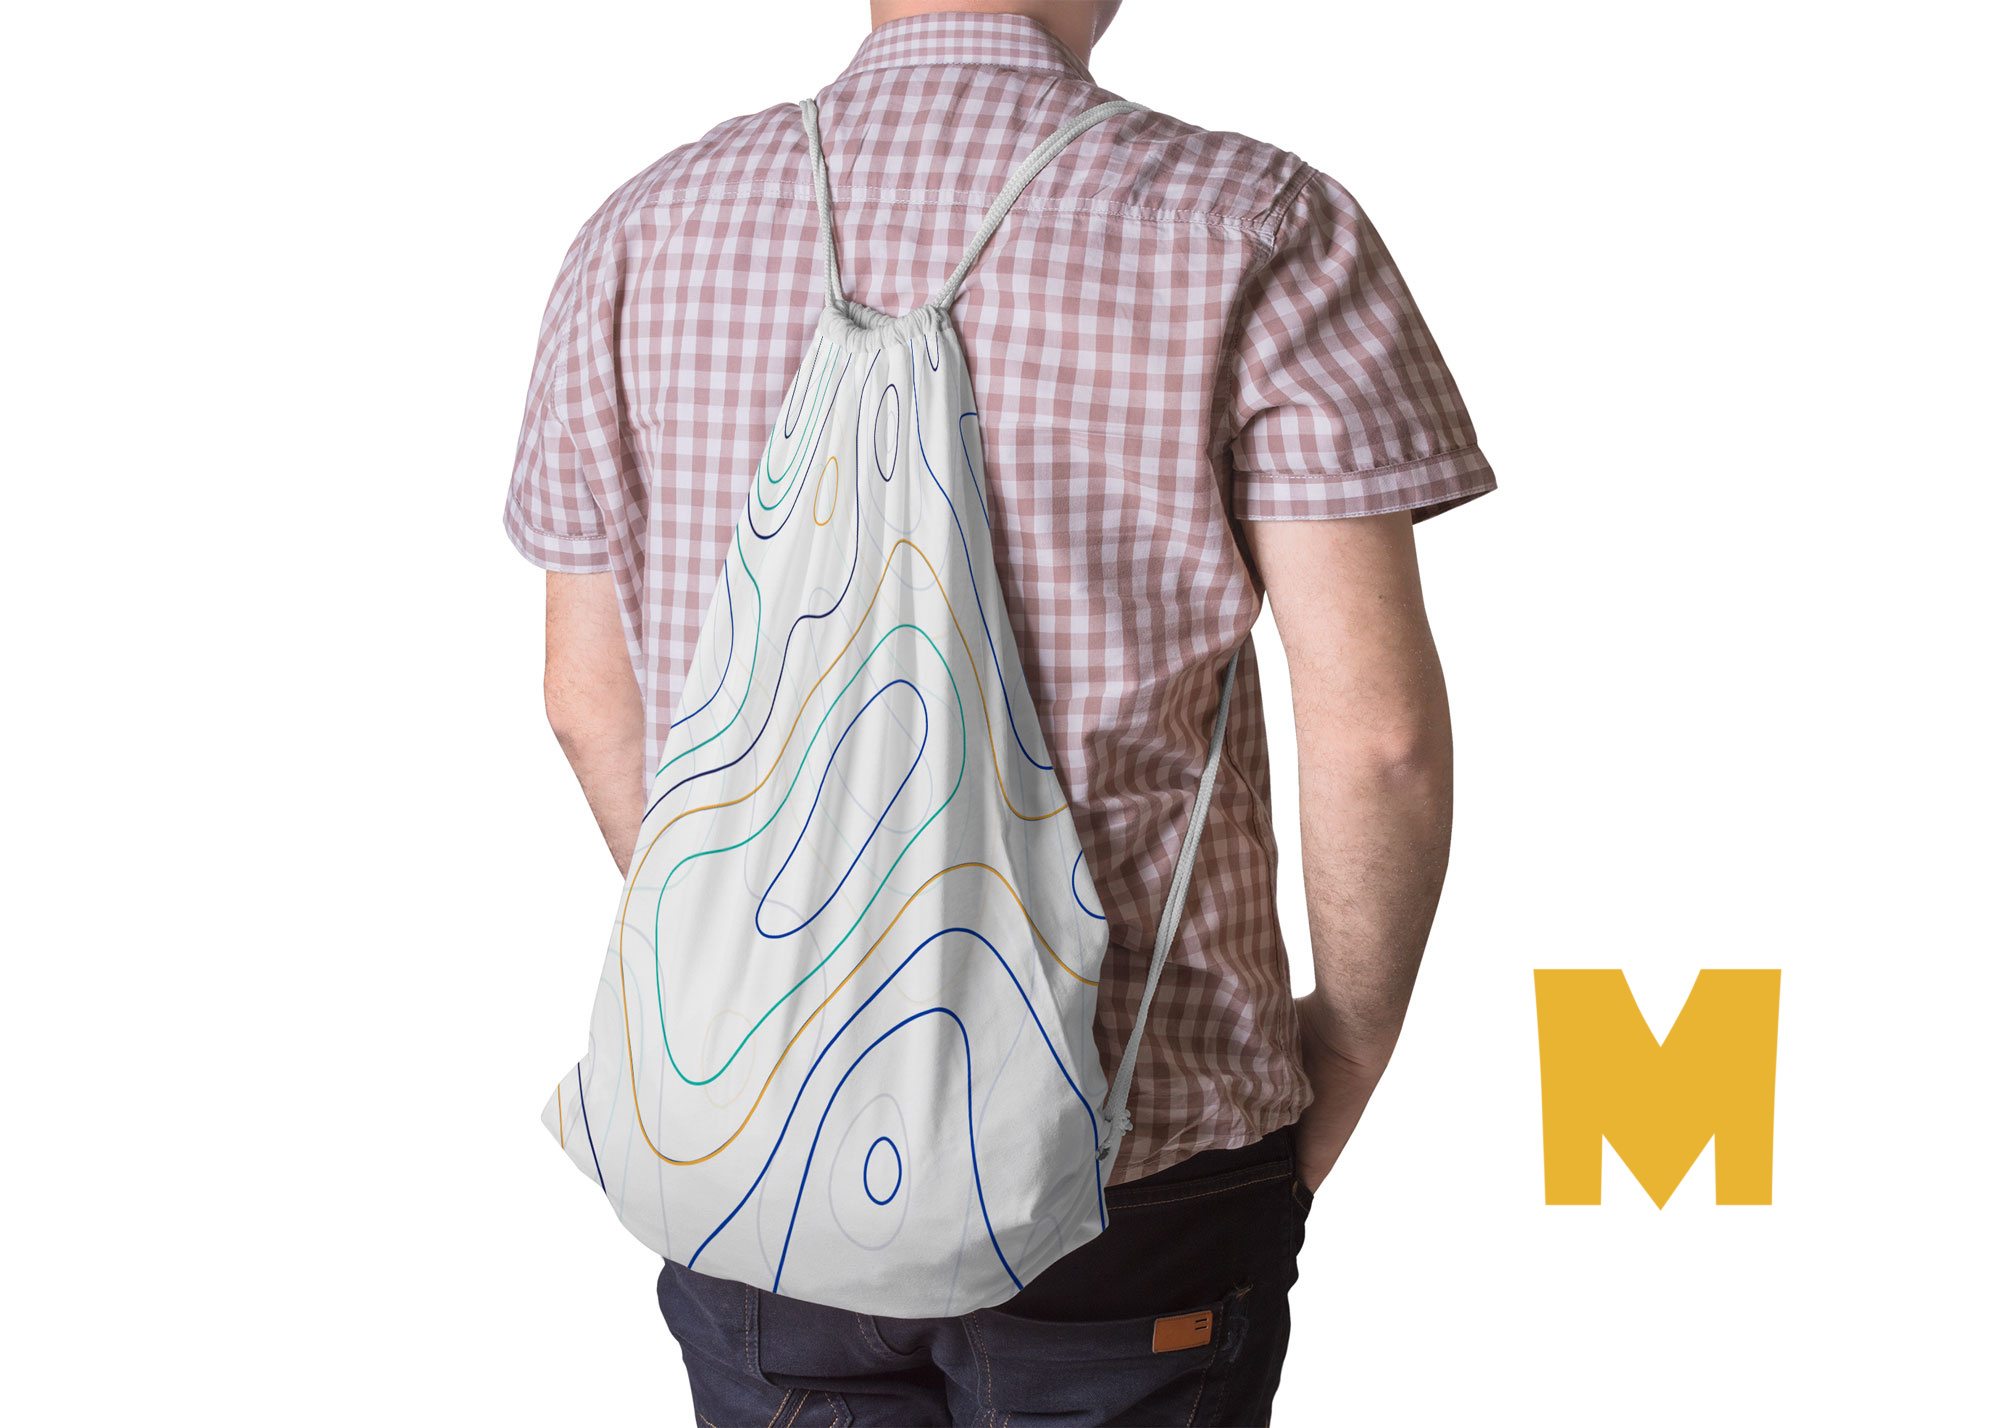 Free Drawstring Bag Artwork Mockup